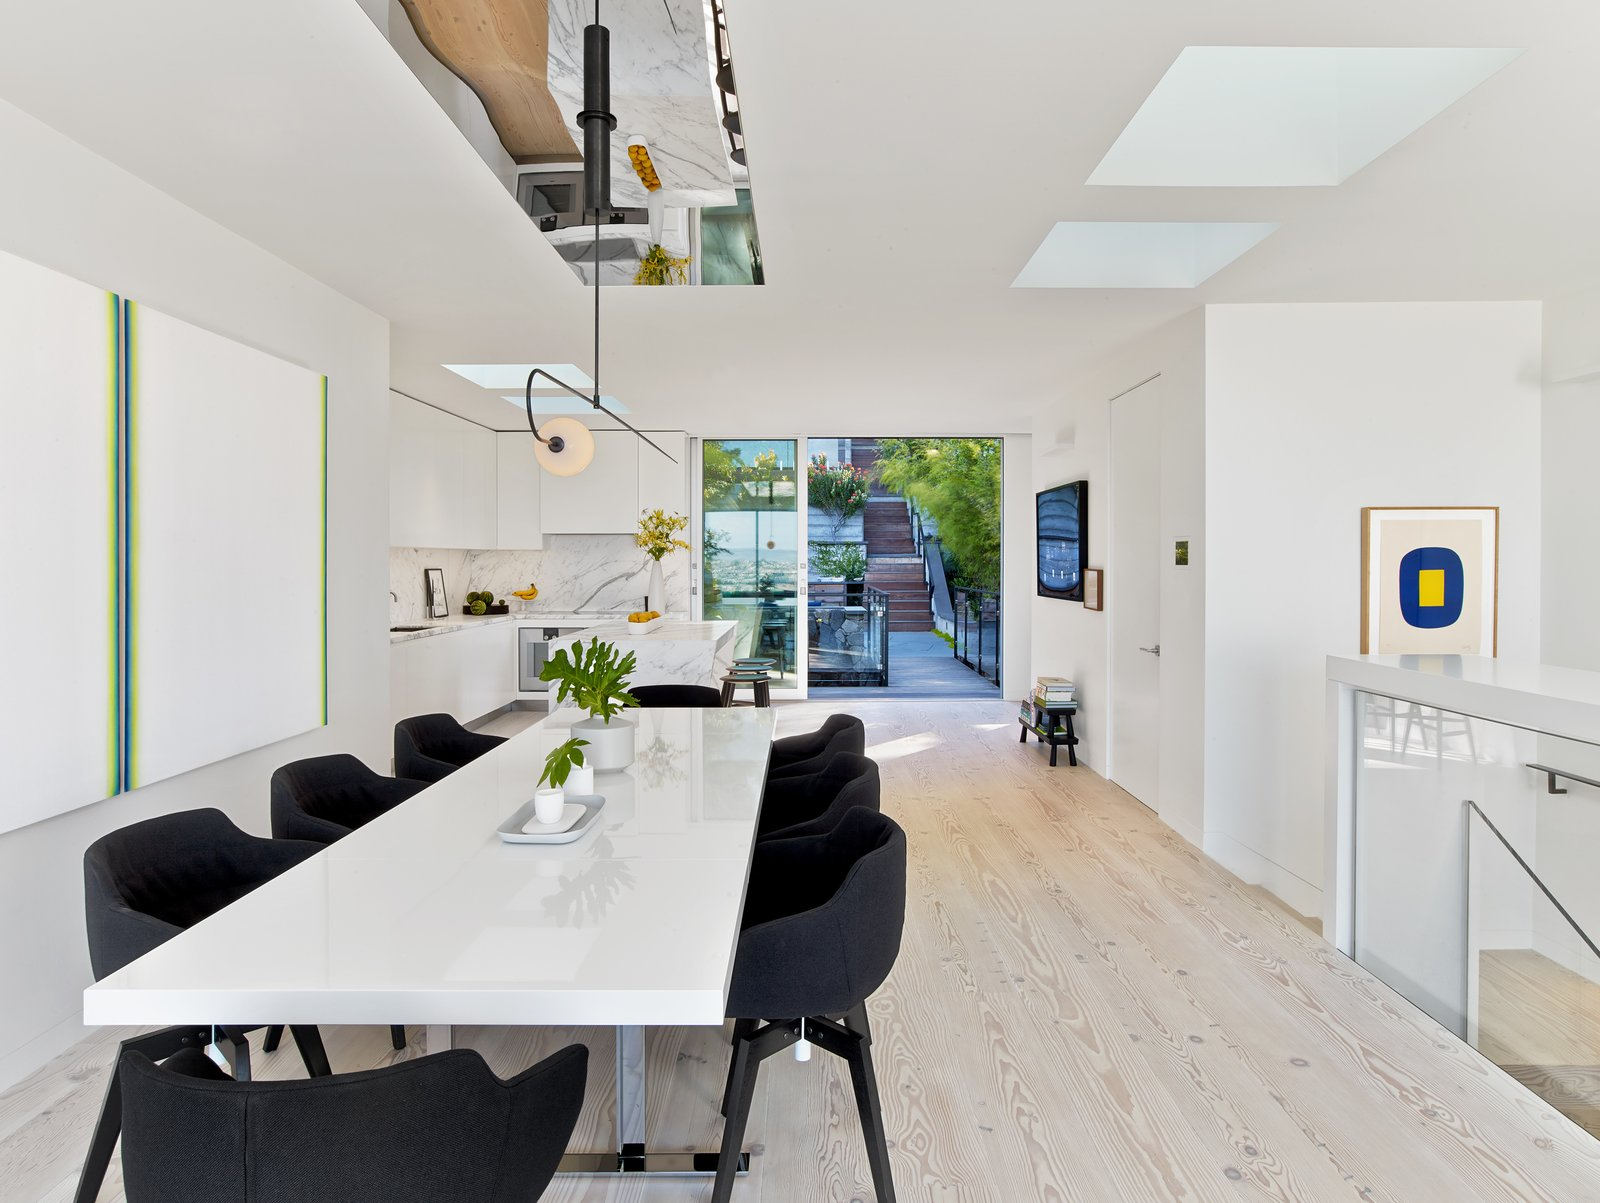 Dining Room, Chair, Table, Pendant Lighting, and Light Hardwood Floor  Glen Park Residence by CCS ARCHITECTURE